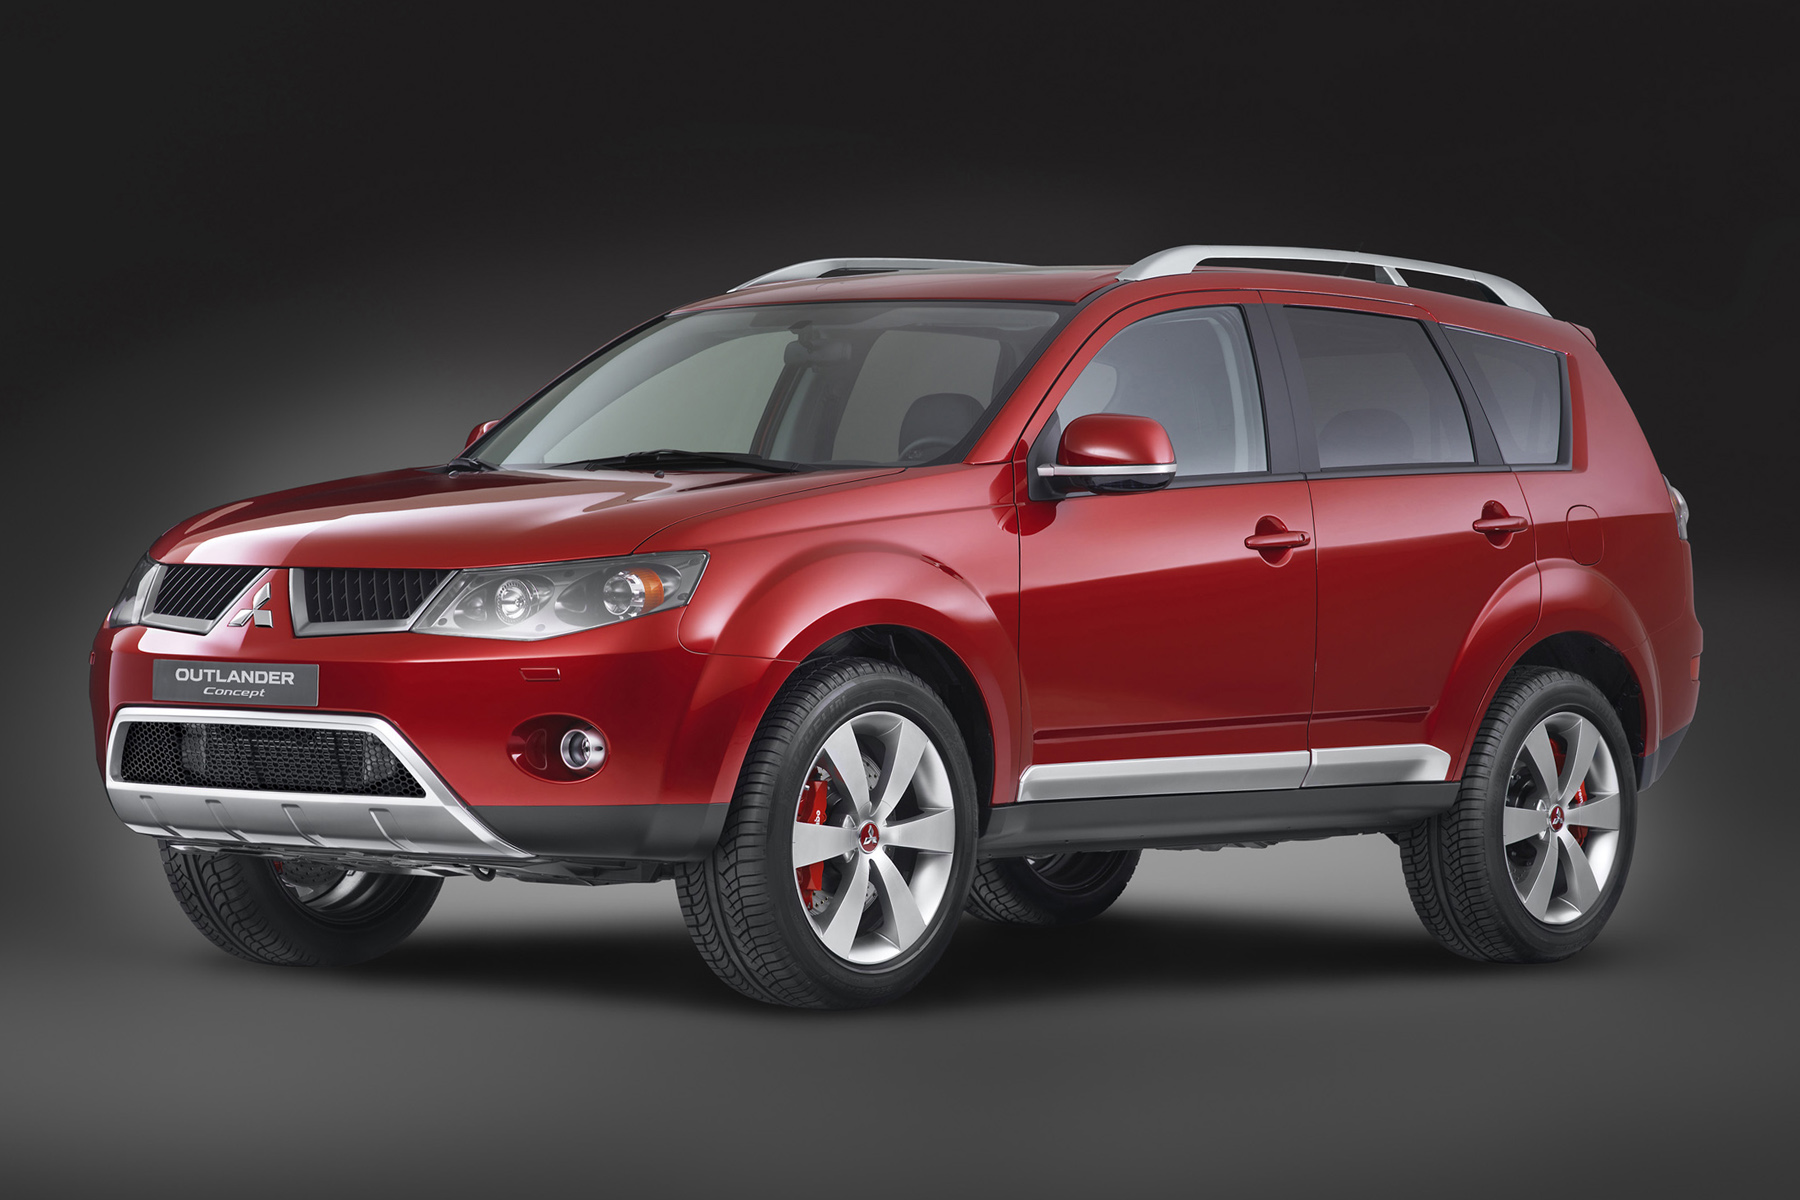 Types Of Toyota Suv >> 2007 Mitsubishi Outlander | Top Speed